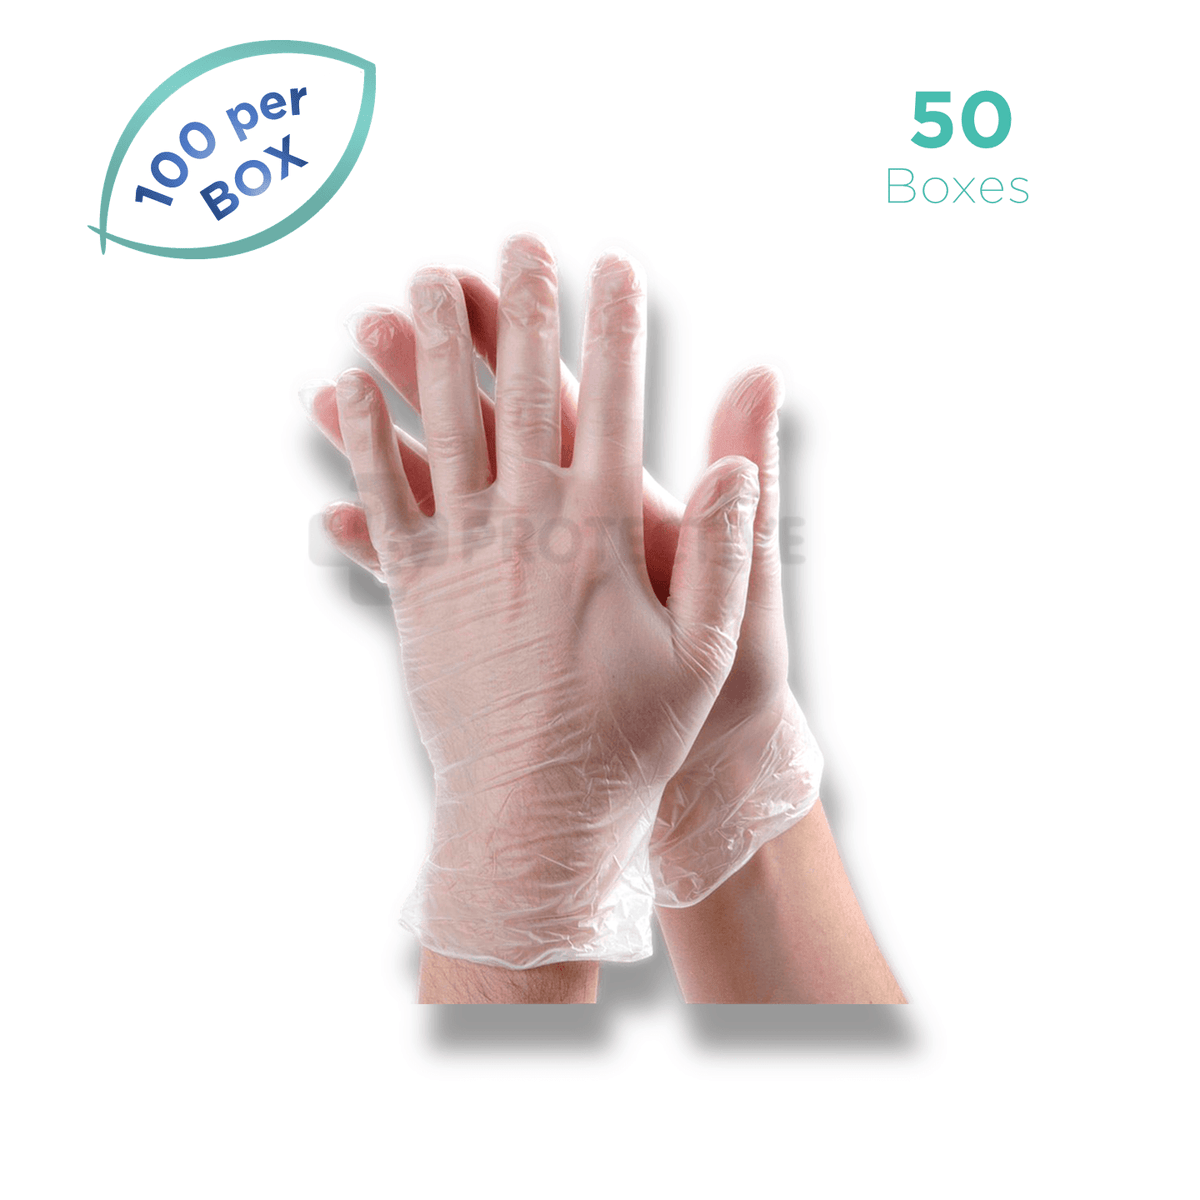 Copy of Vinyl Examination Gloves - Pack of 5,000. - USA Medical Supply - DB Protective